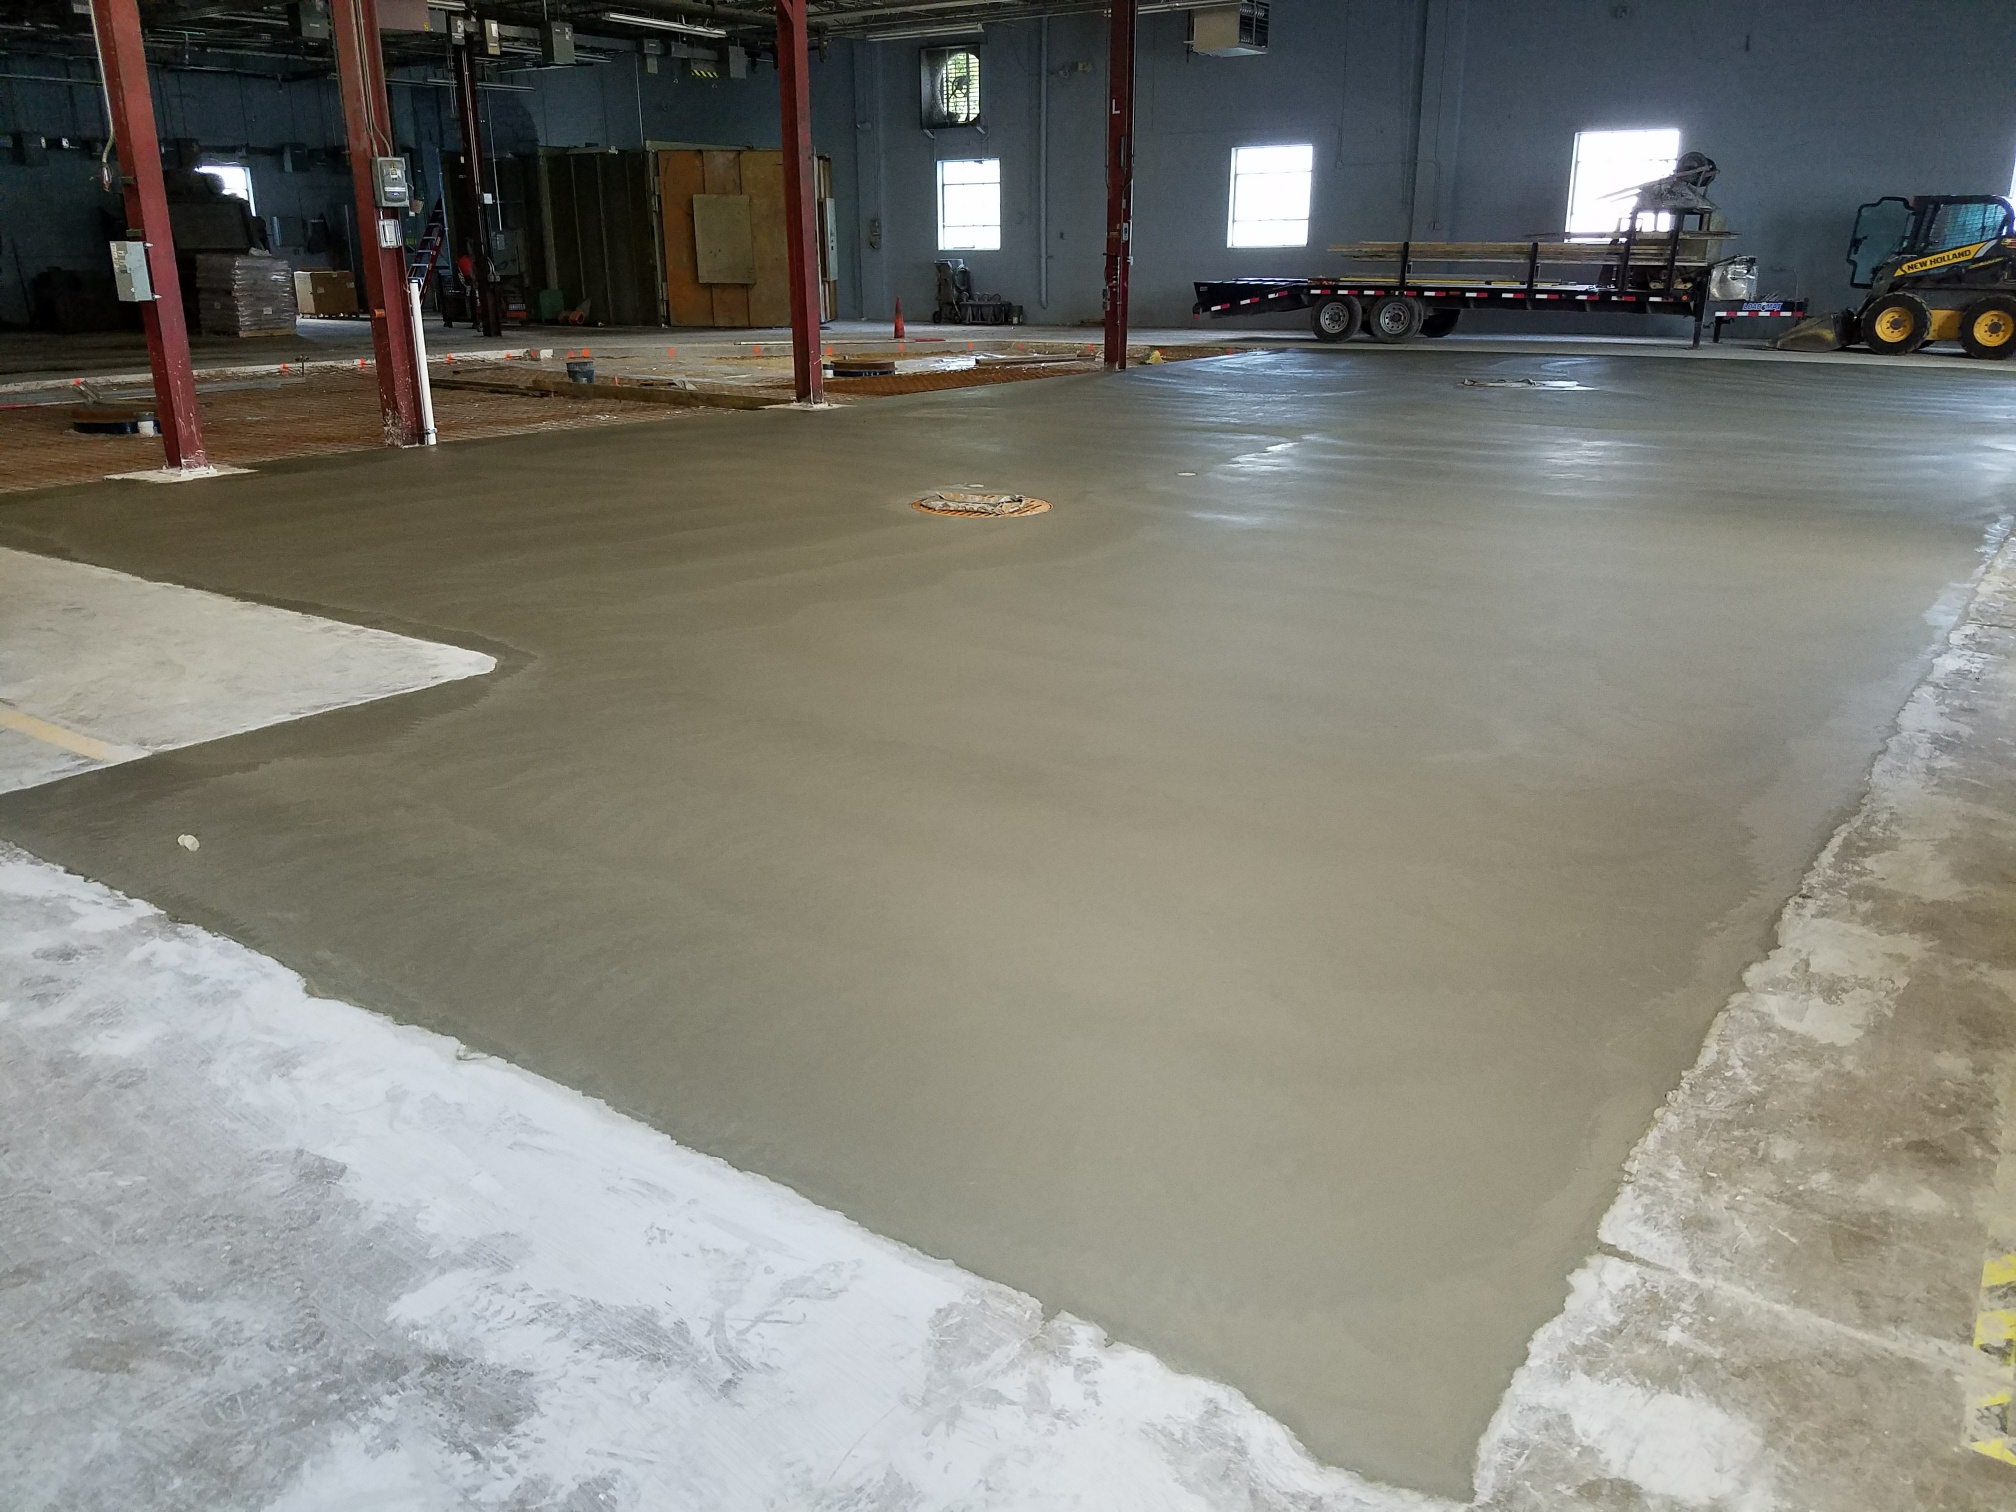 EFCO Metal Finishing installs new floor for vibratory finishing in Menomonee Falls, WI location